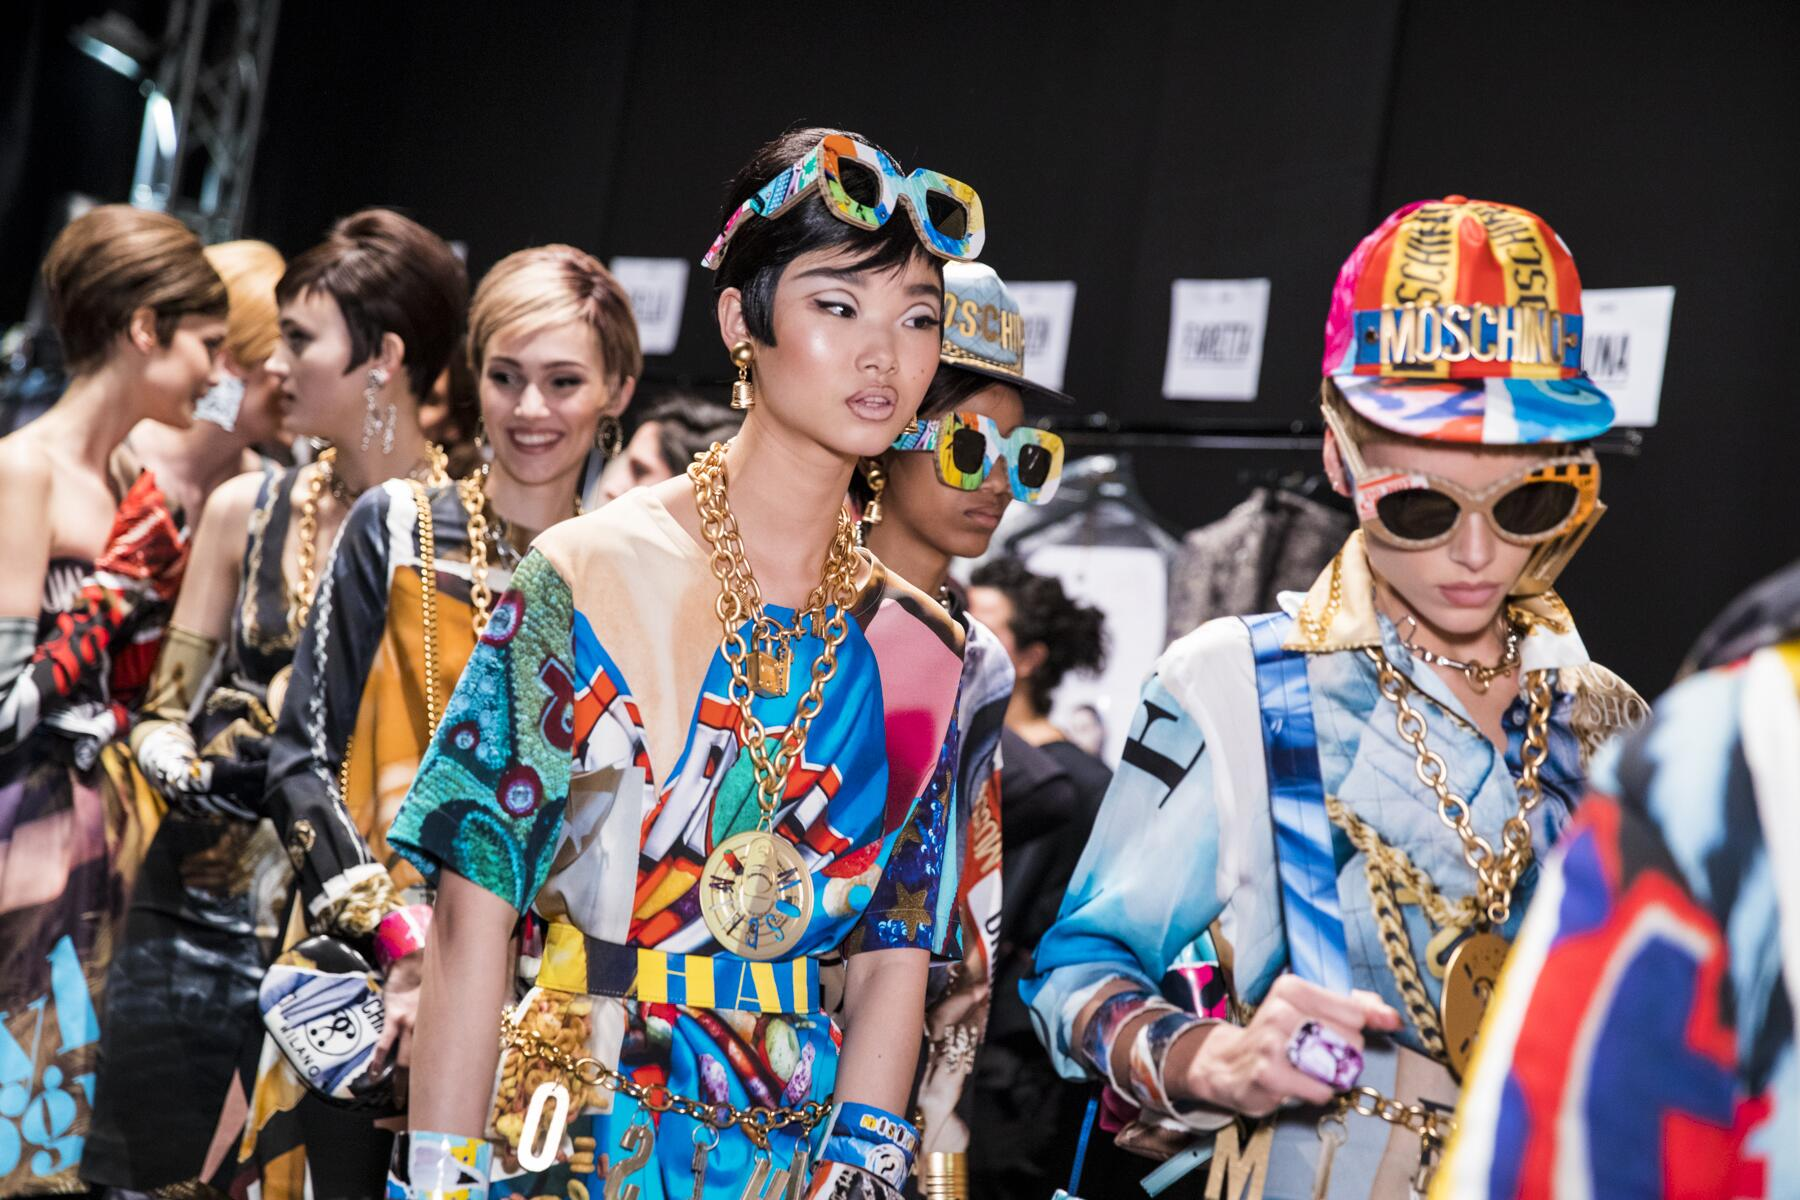 Fashion Models Backstage MoschinoBackstage Moschino Milan Fashion Week Details